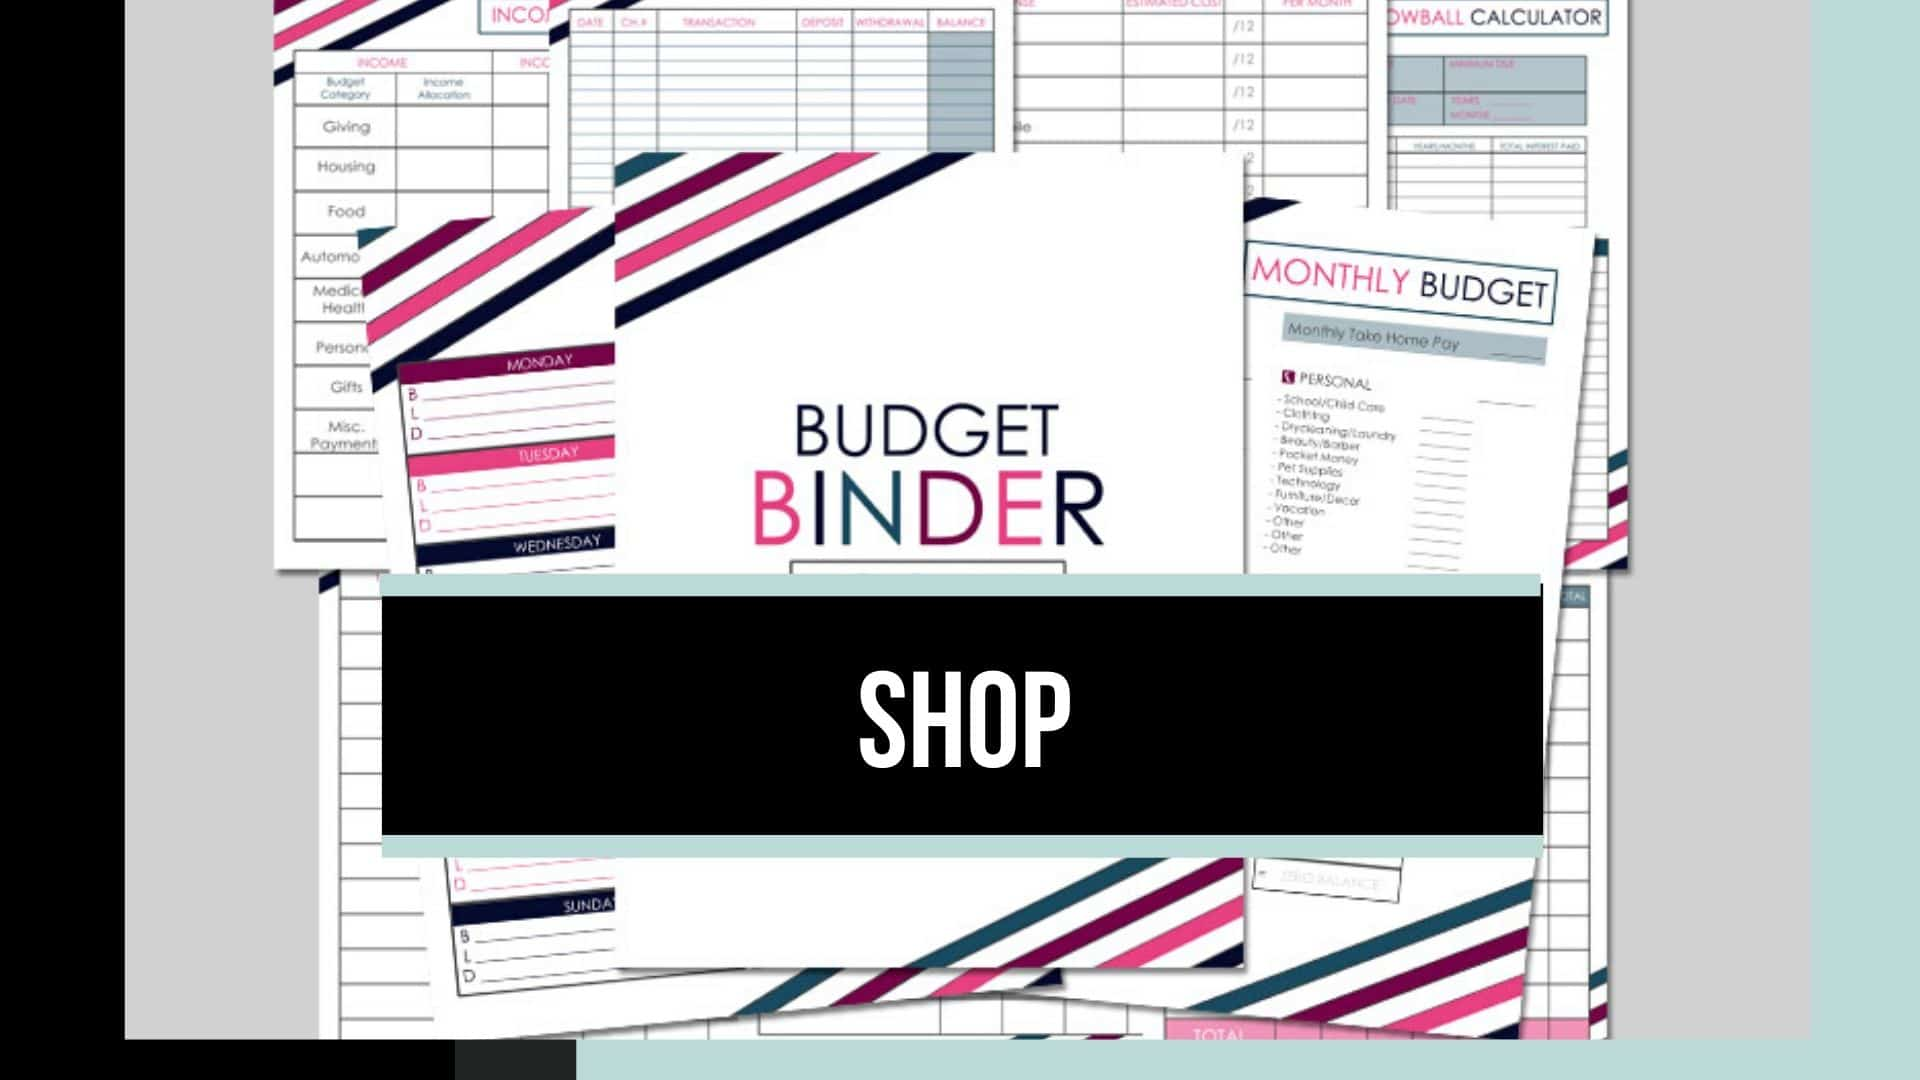 Shop our budgeting printables